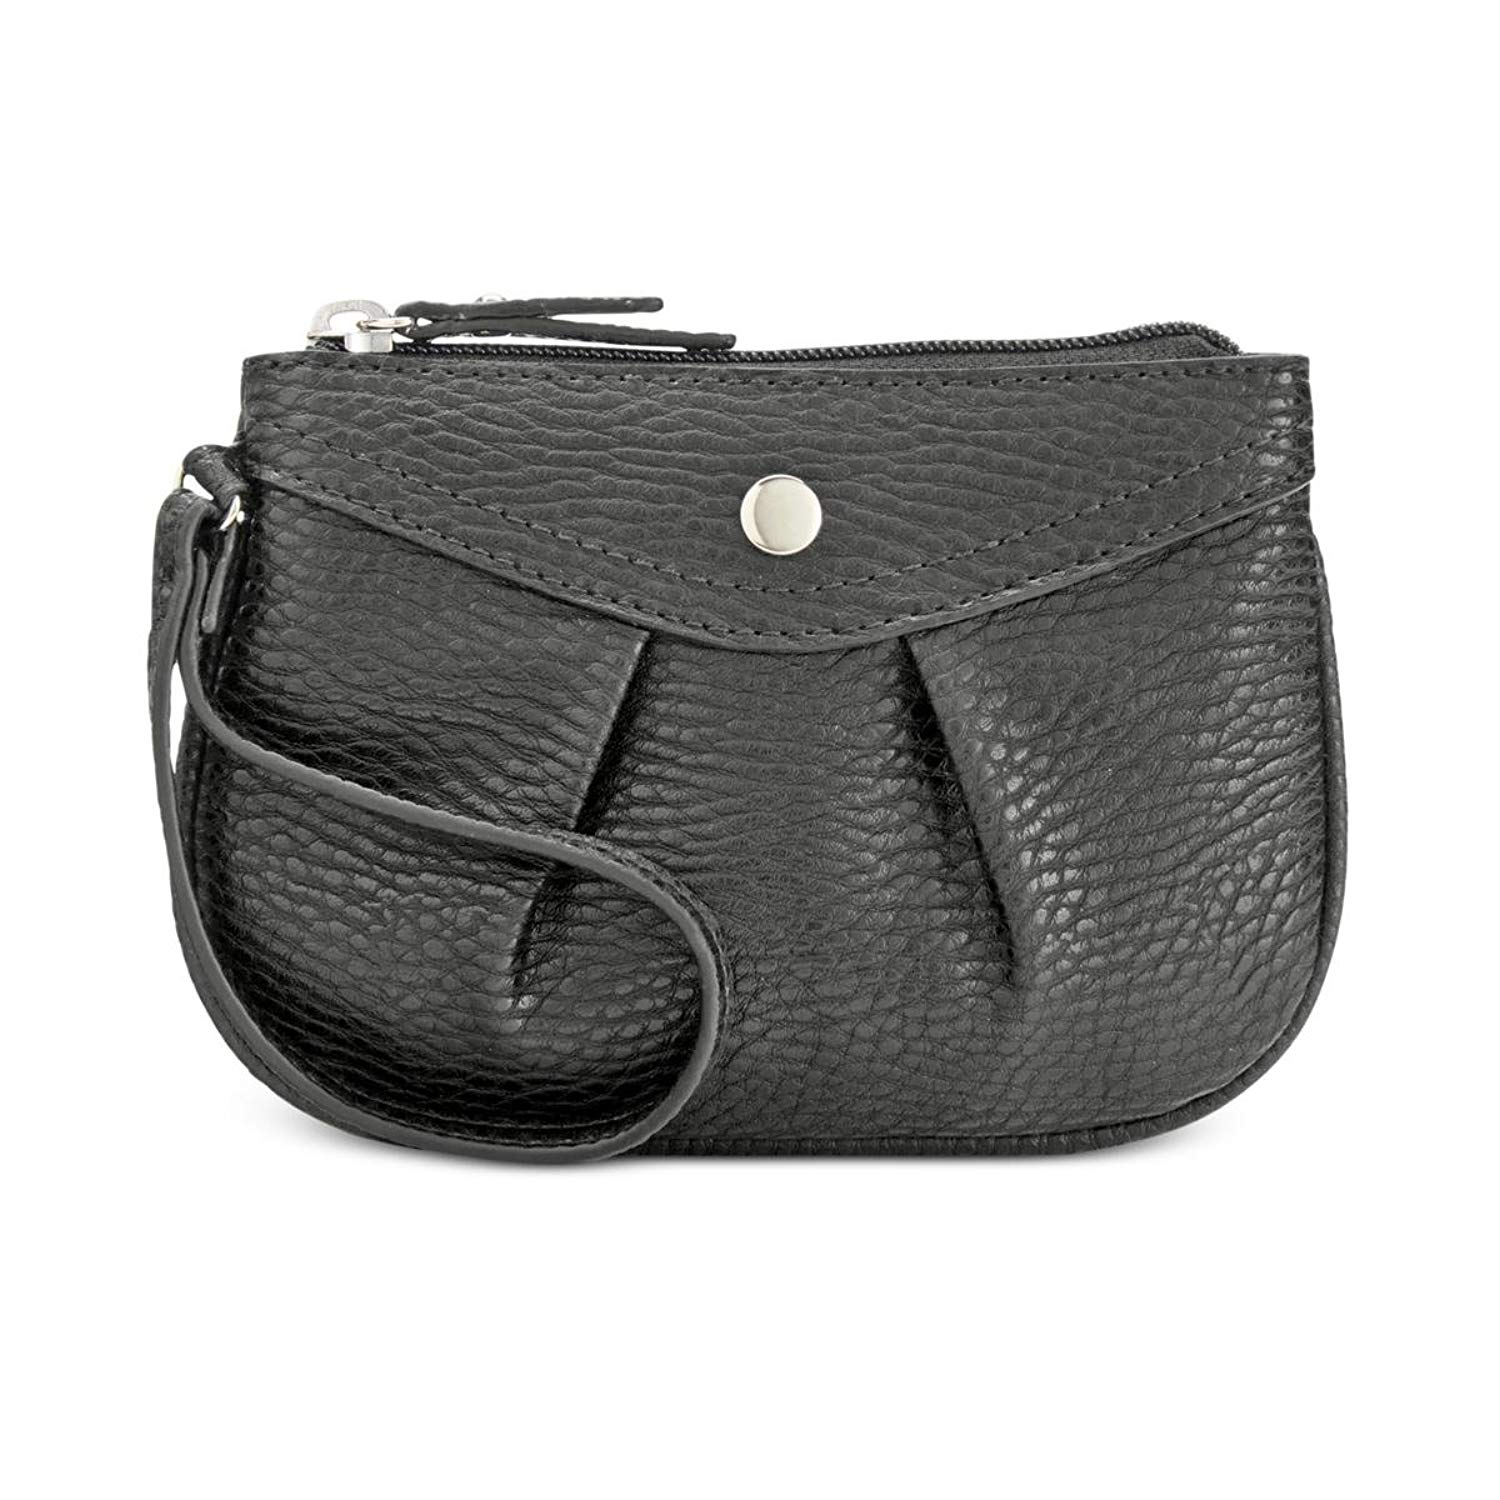 Style & Co. Womens Hannah Faux Leather Wristlet Coin Purse